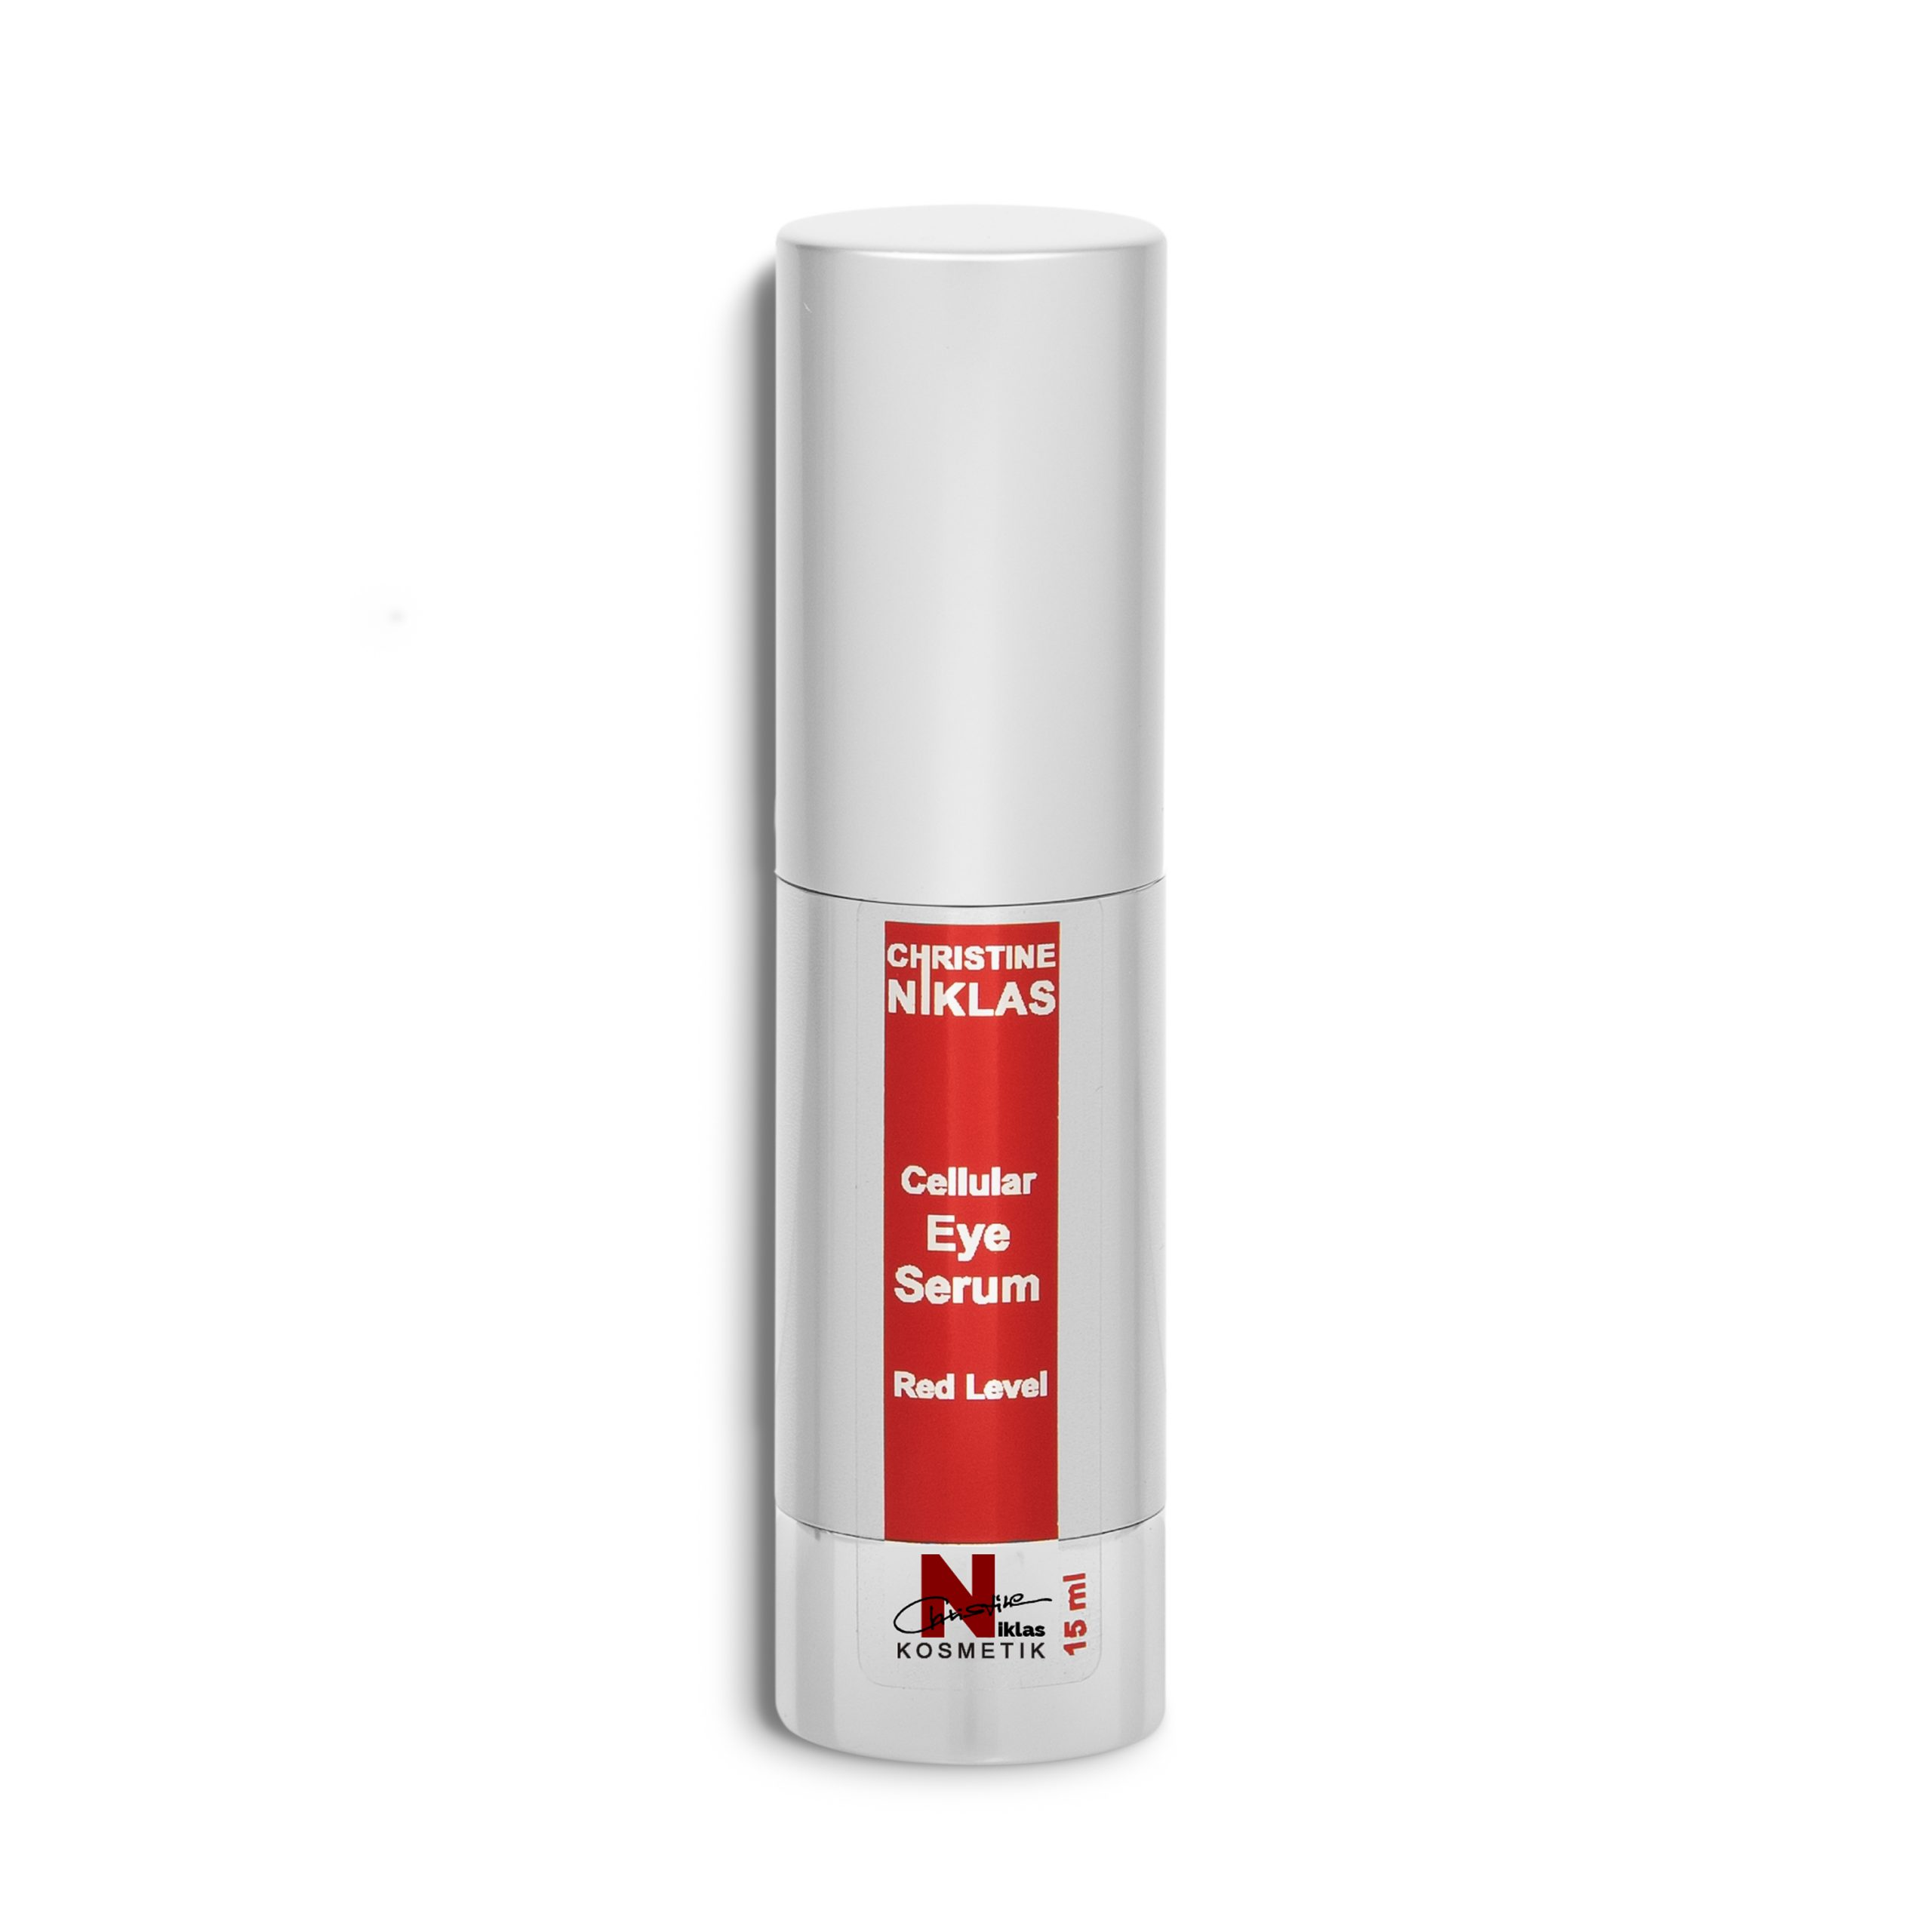 Cellular-Eye-Serum-Red-Level